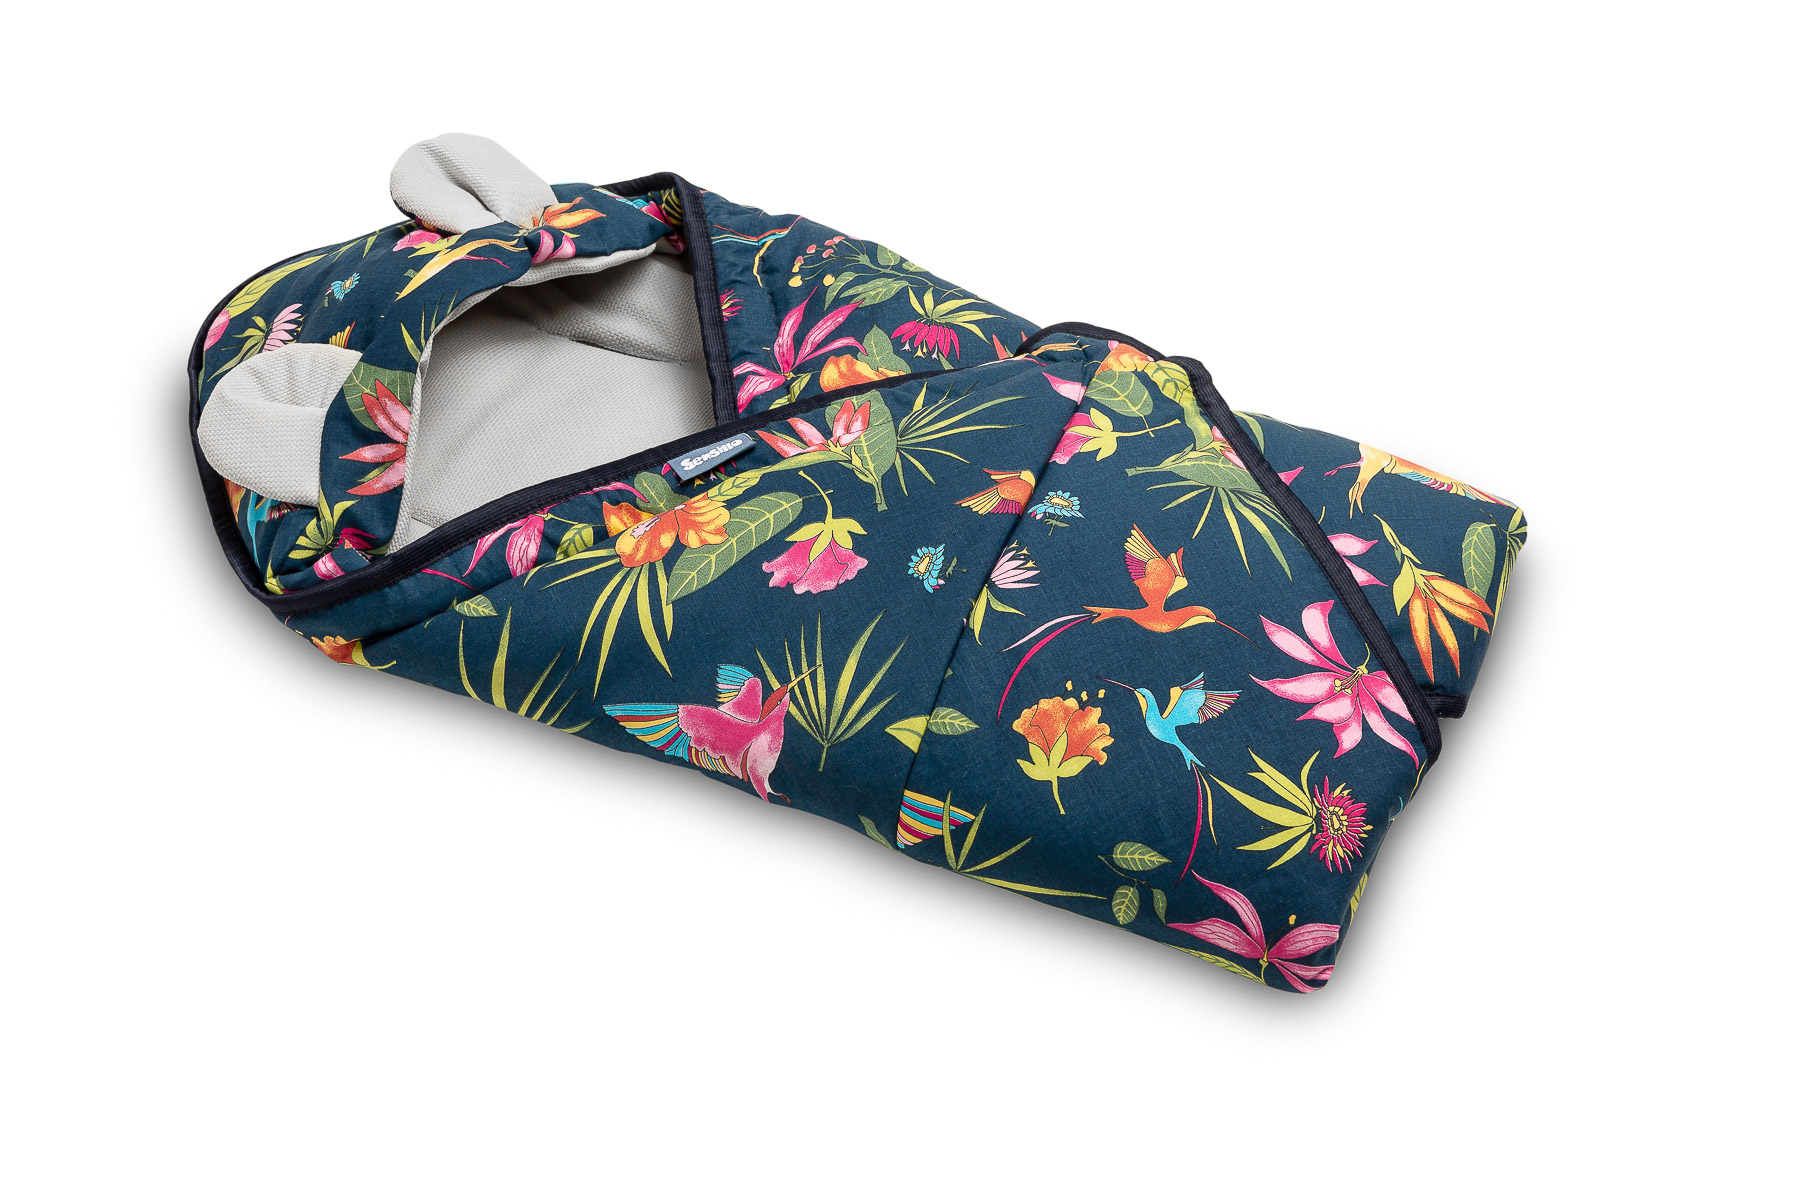 Velvet carry-cot swaddle blanket – humming bird navy blue